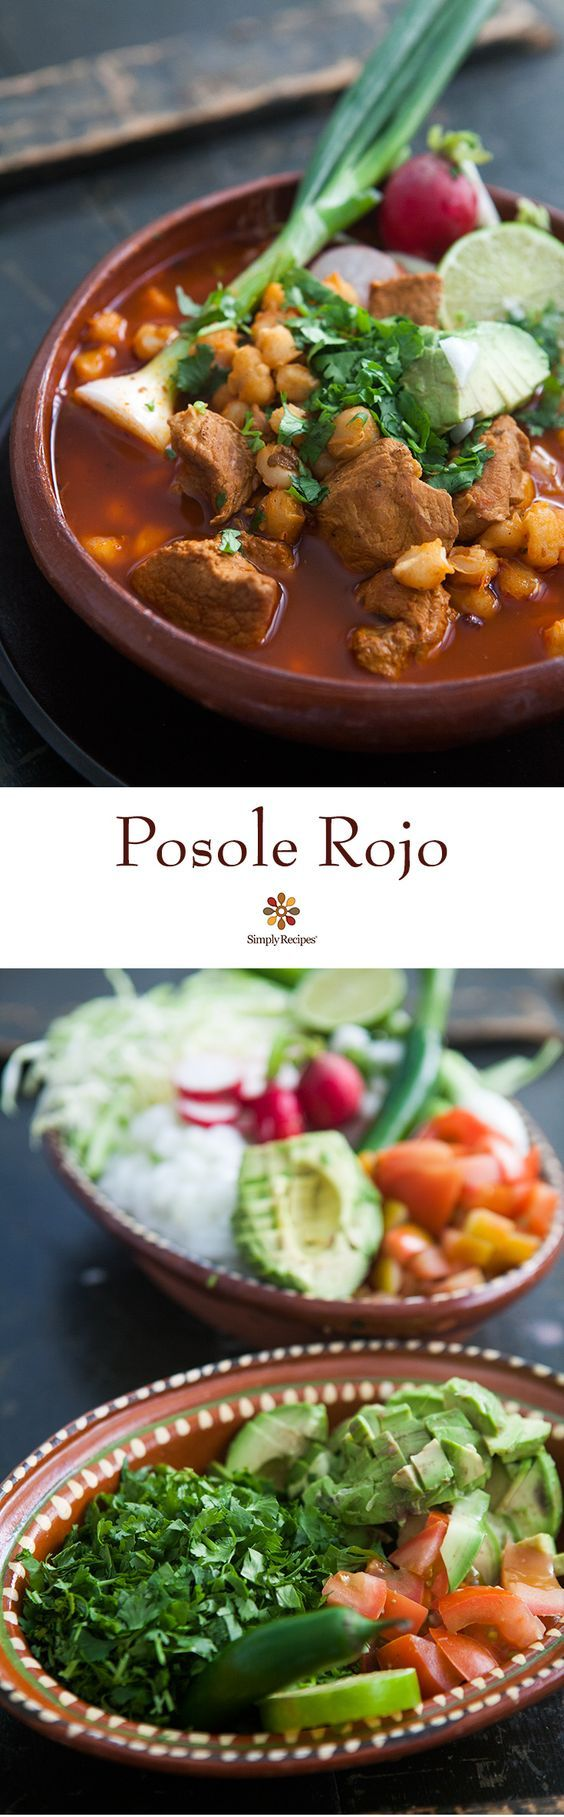 Pozole Rojo Mexican Pork And Hominy Stew Recipe Mexican Food Recipes Red Posole Recipe